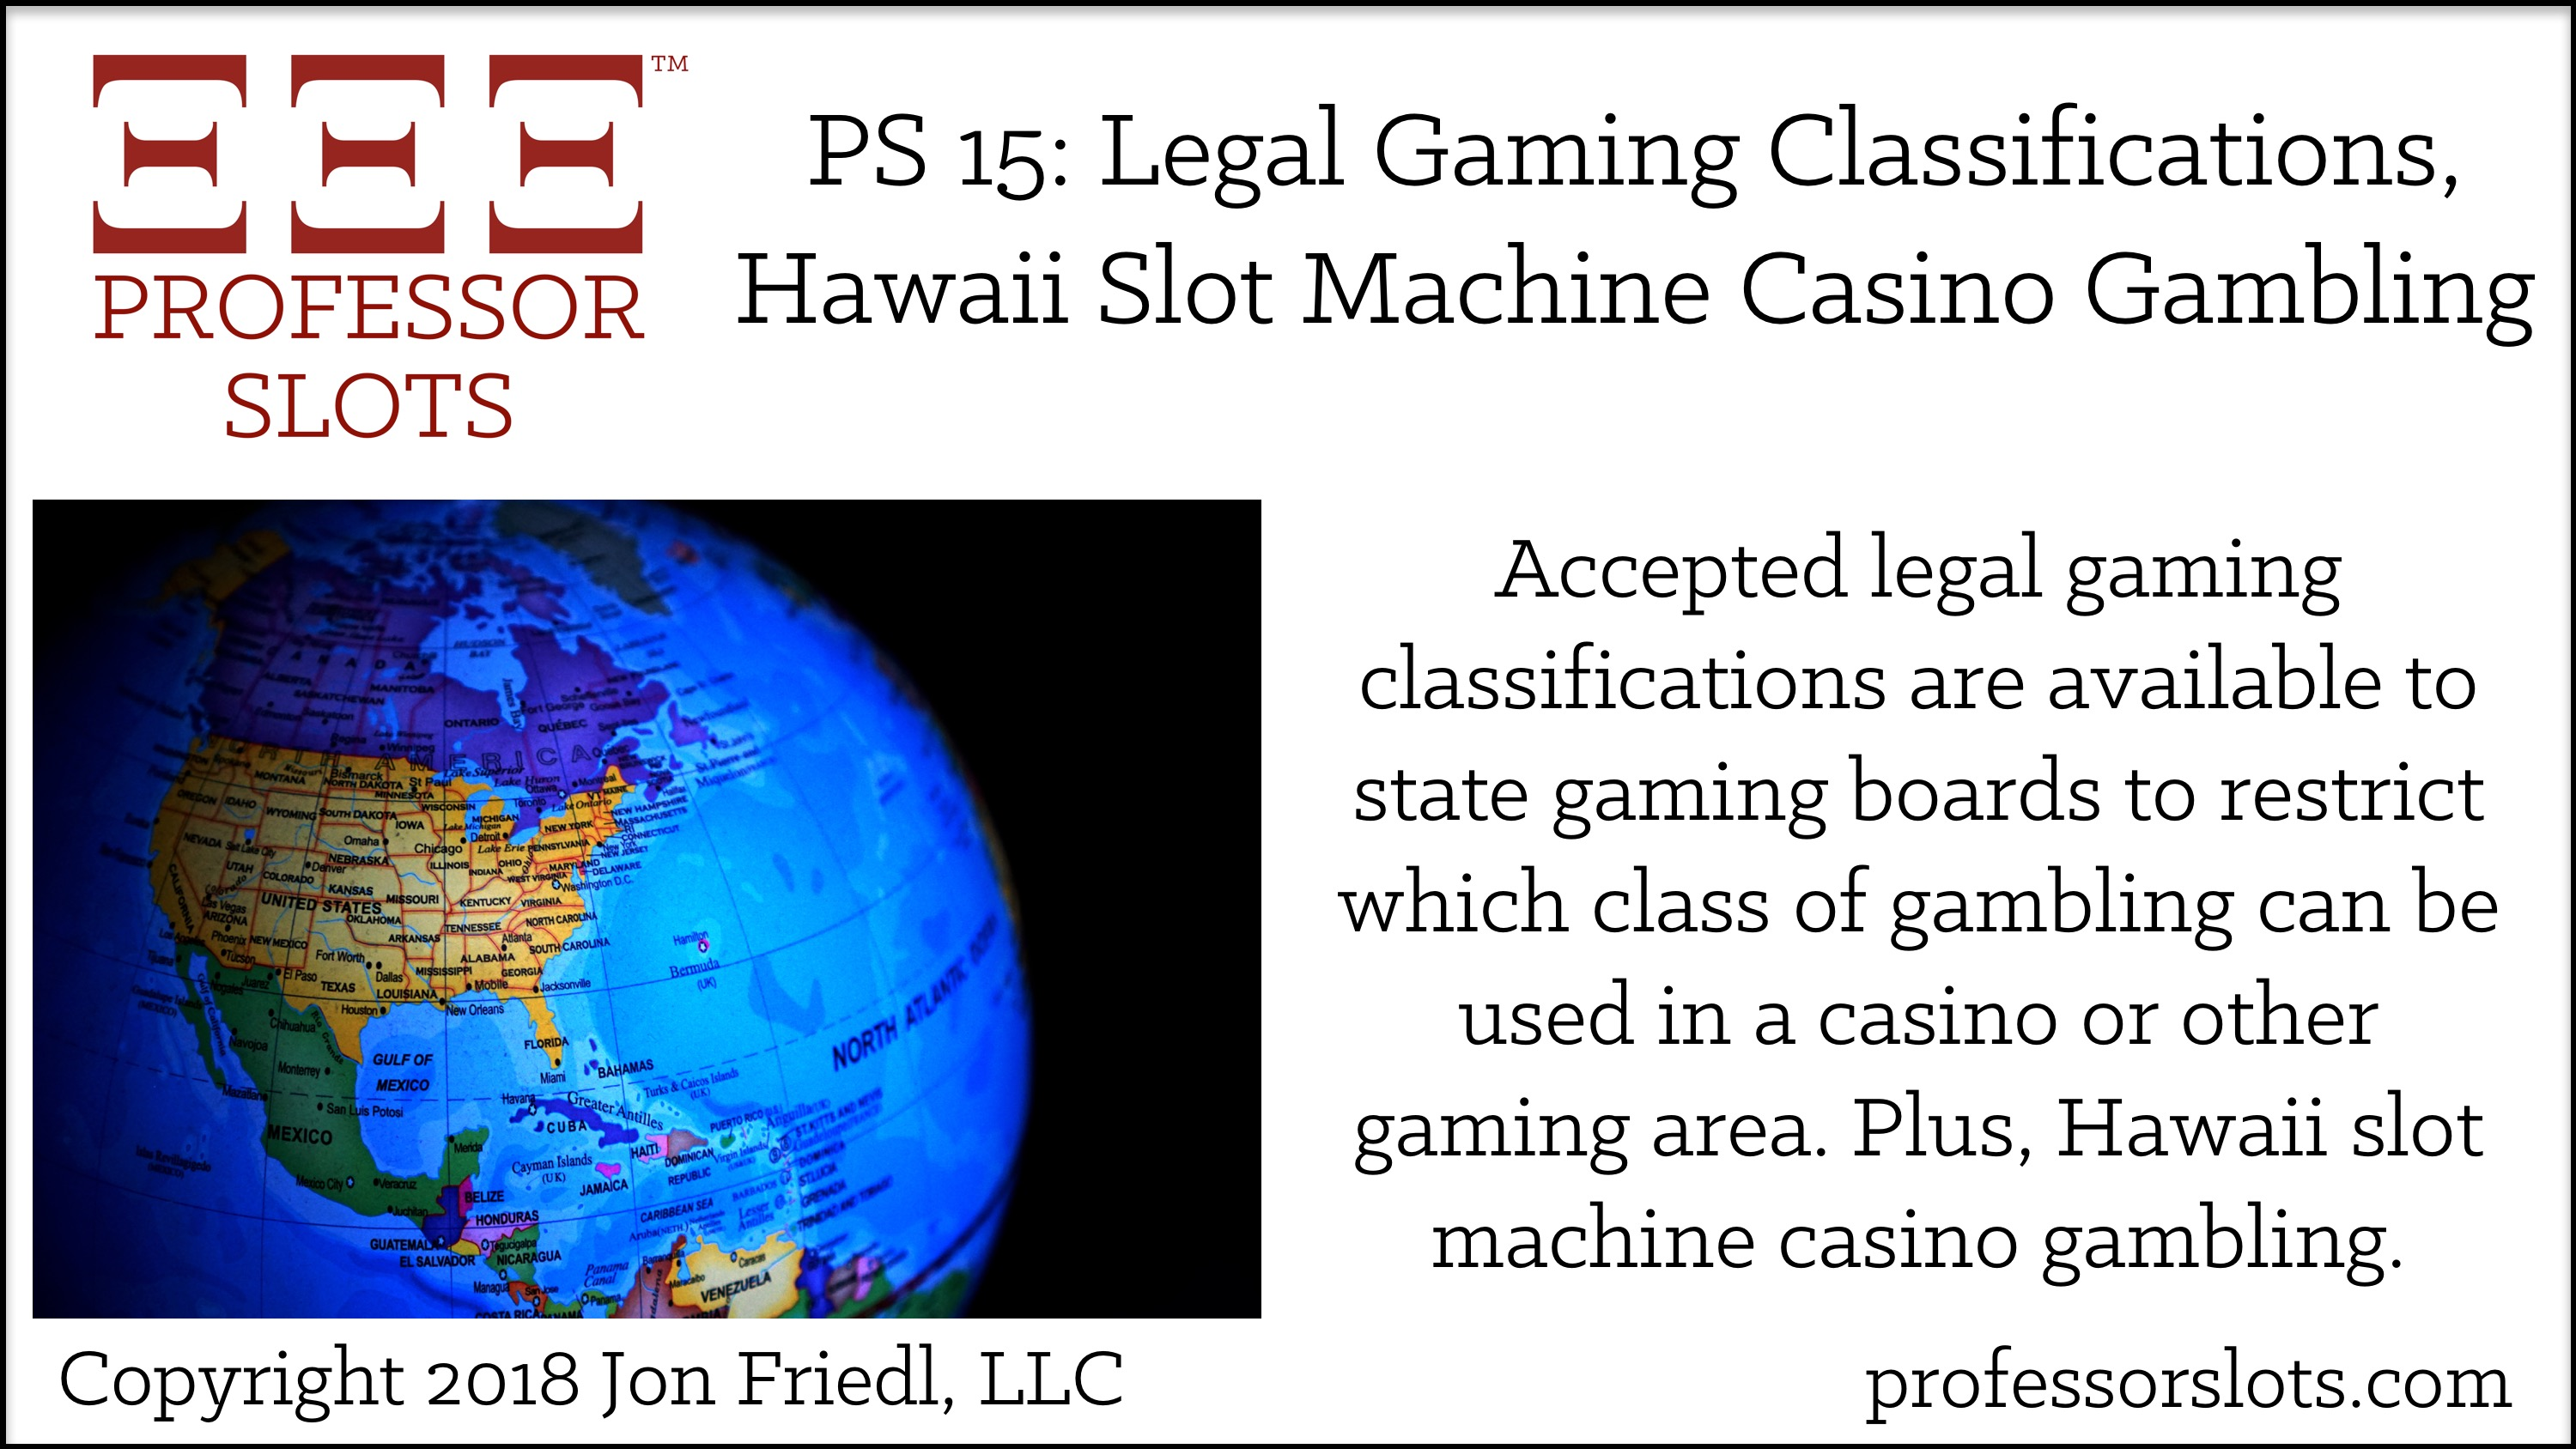 legalizing gambling in hawaii Hawaii is one of the last two states with no legalized gambling, but lawmakers facing billion-dollar budget deficits and hunting for ways increase revenue are thinking about allowing casinos in tourist-filled waikiki or on native hawaiian lands.